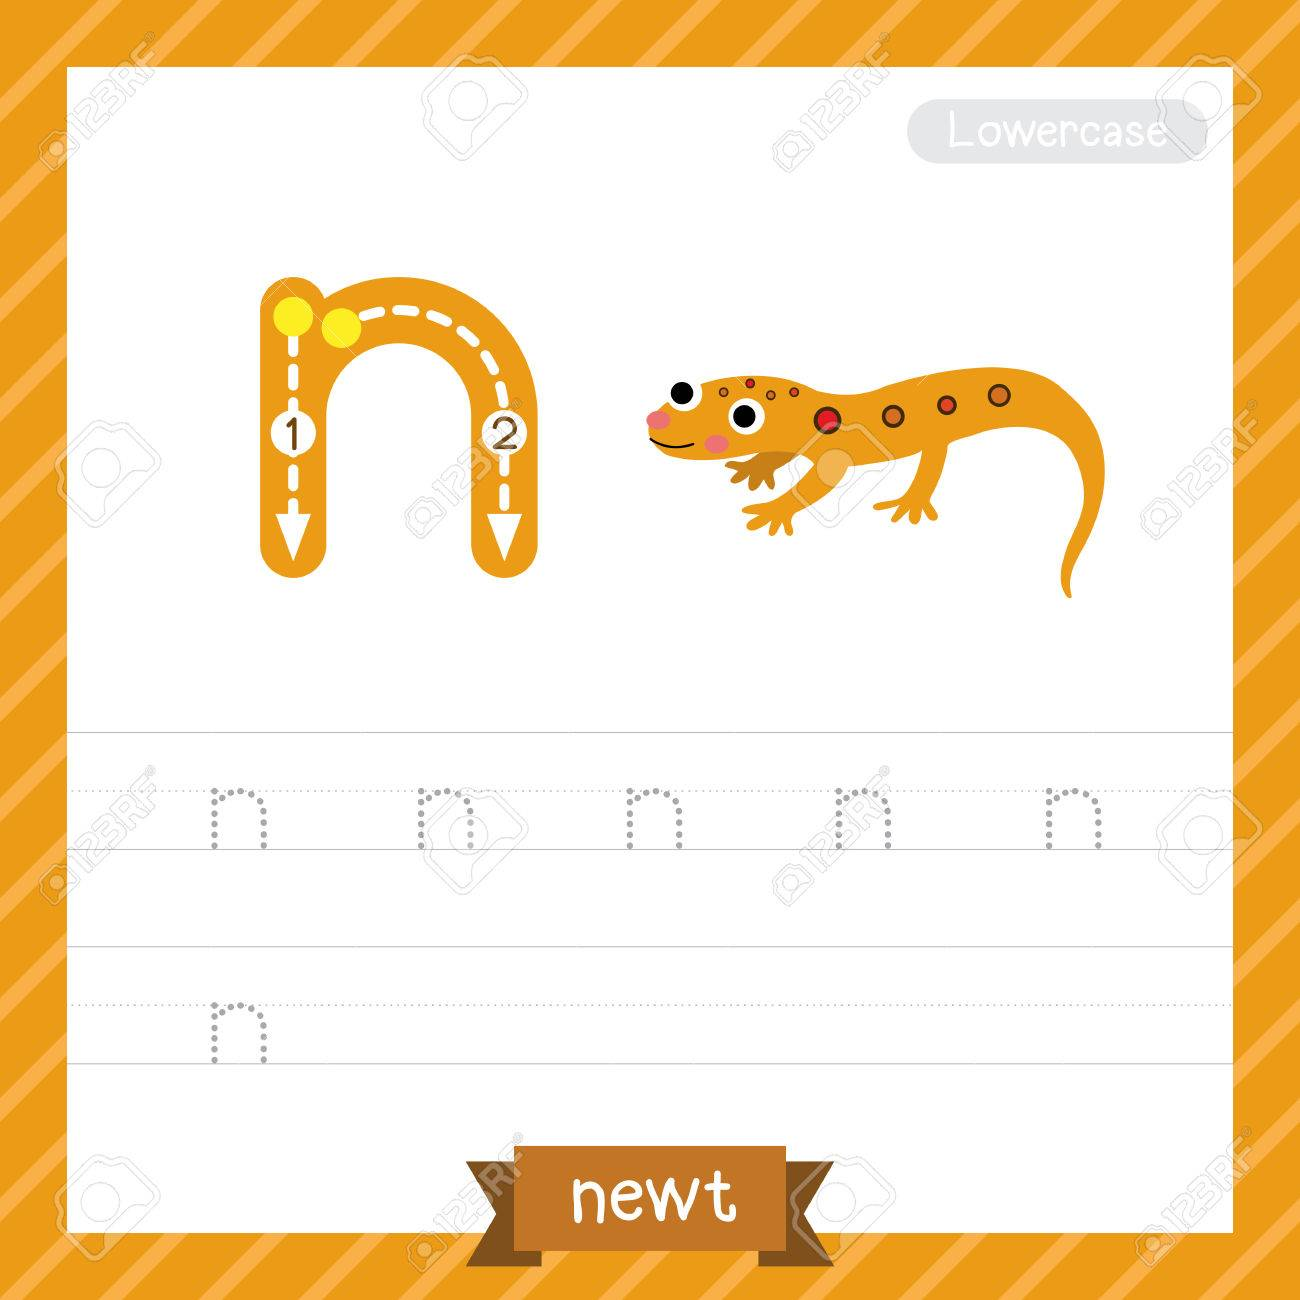 Letter N Lowercase Tracing Practice Worksheet With Newt For Kids ...